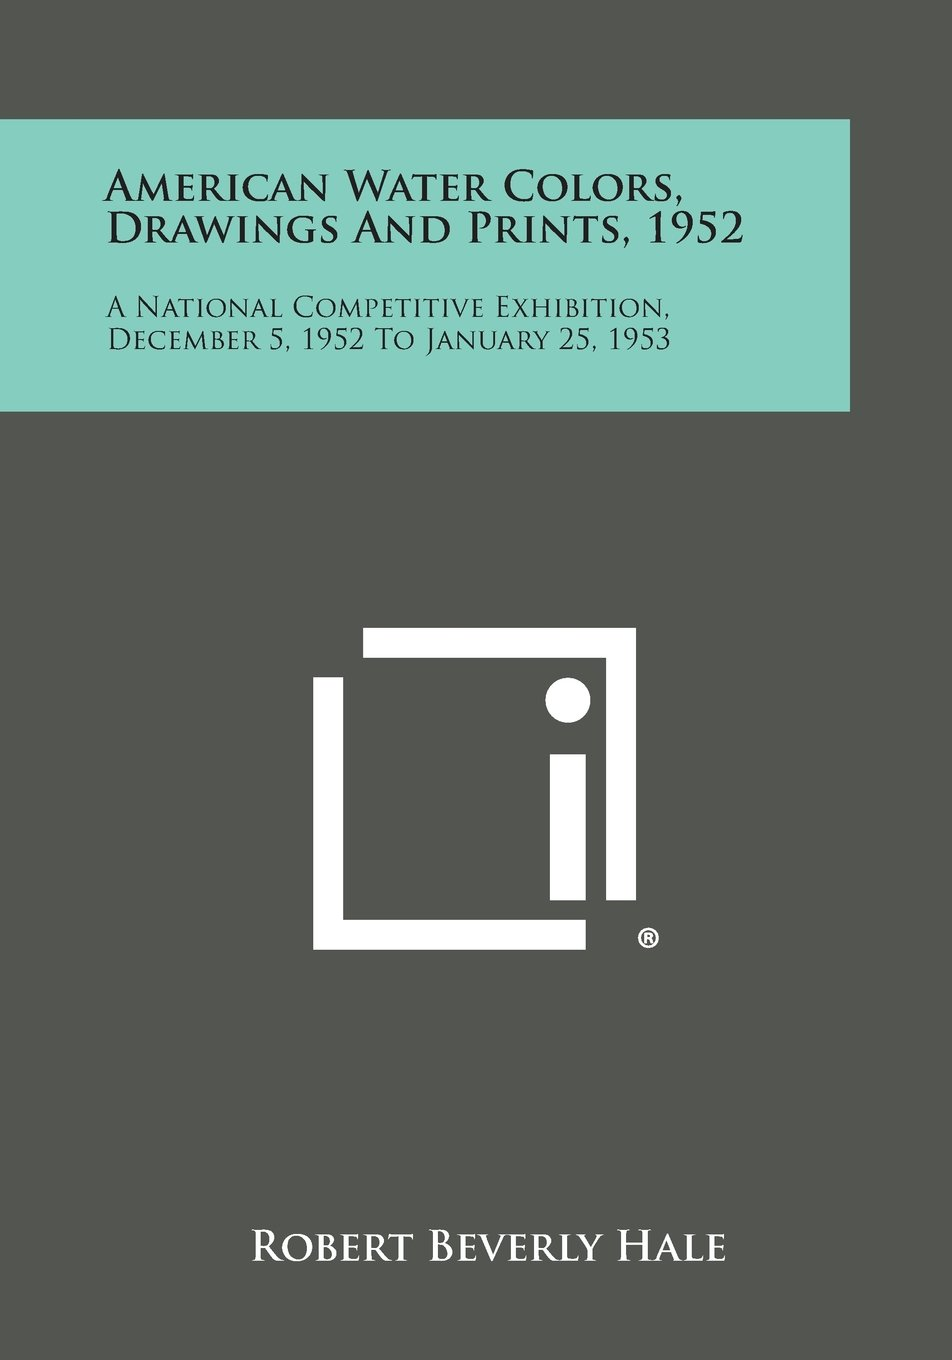 Read Online American Water Colors, Drawings and Prints, 1952: A National Competitive Exhibition, December 5, 1952 to January 25, 1953 PDF